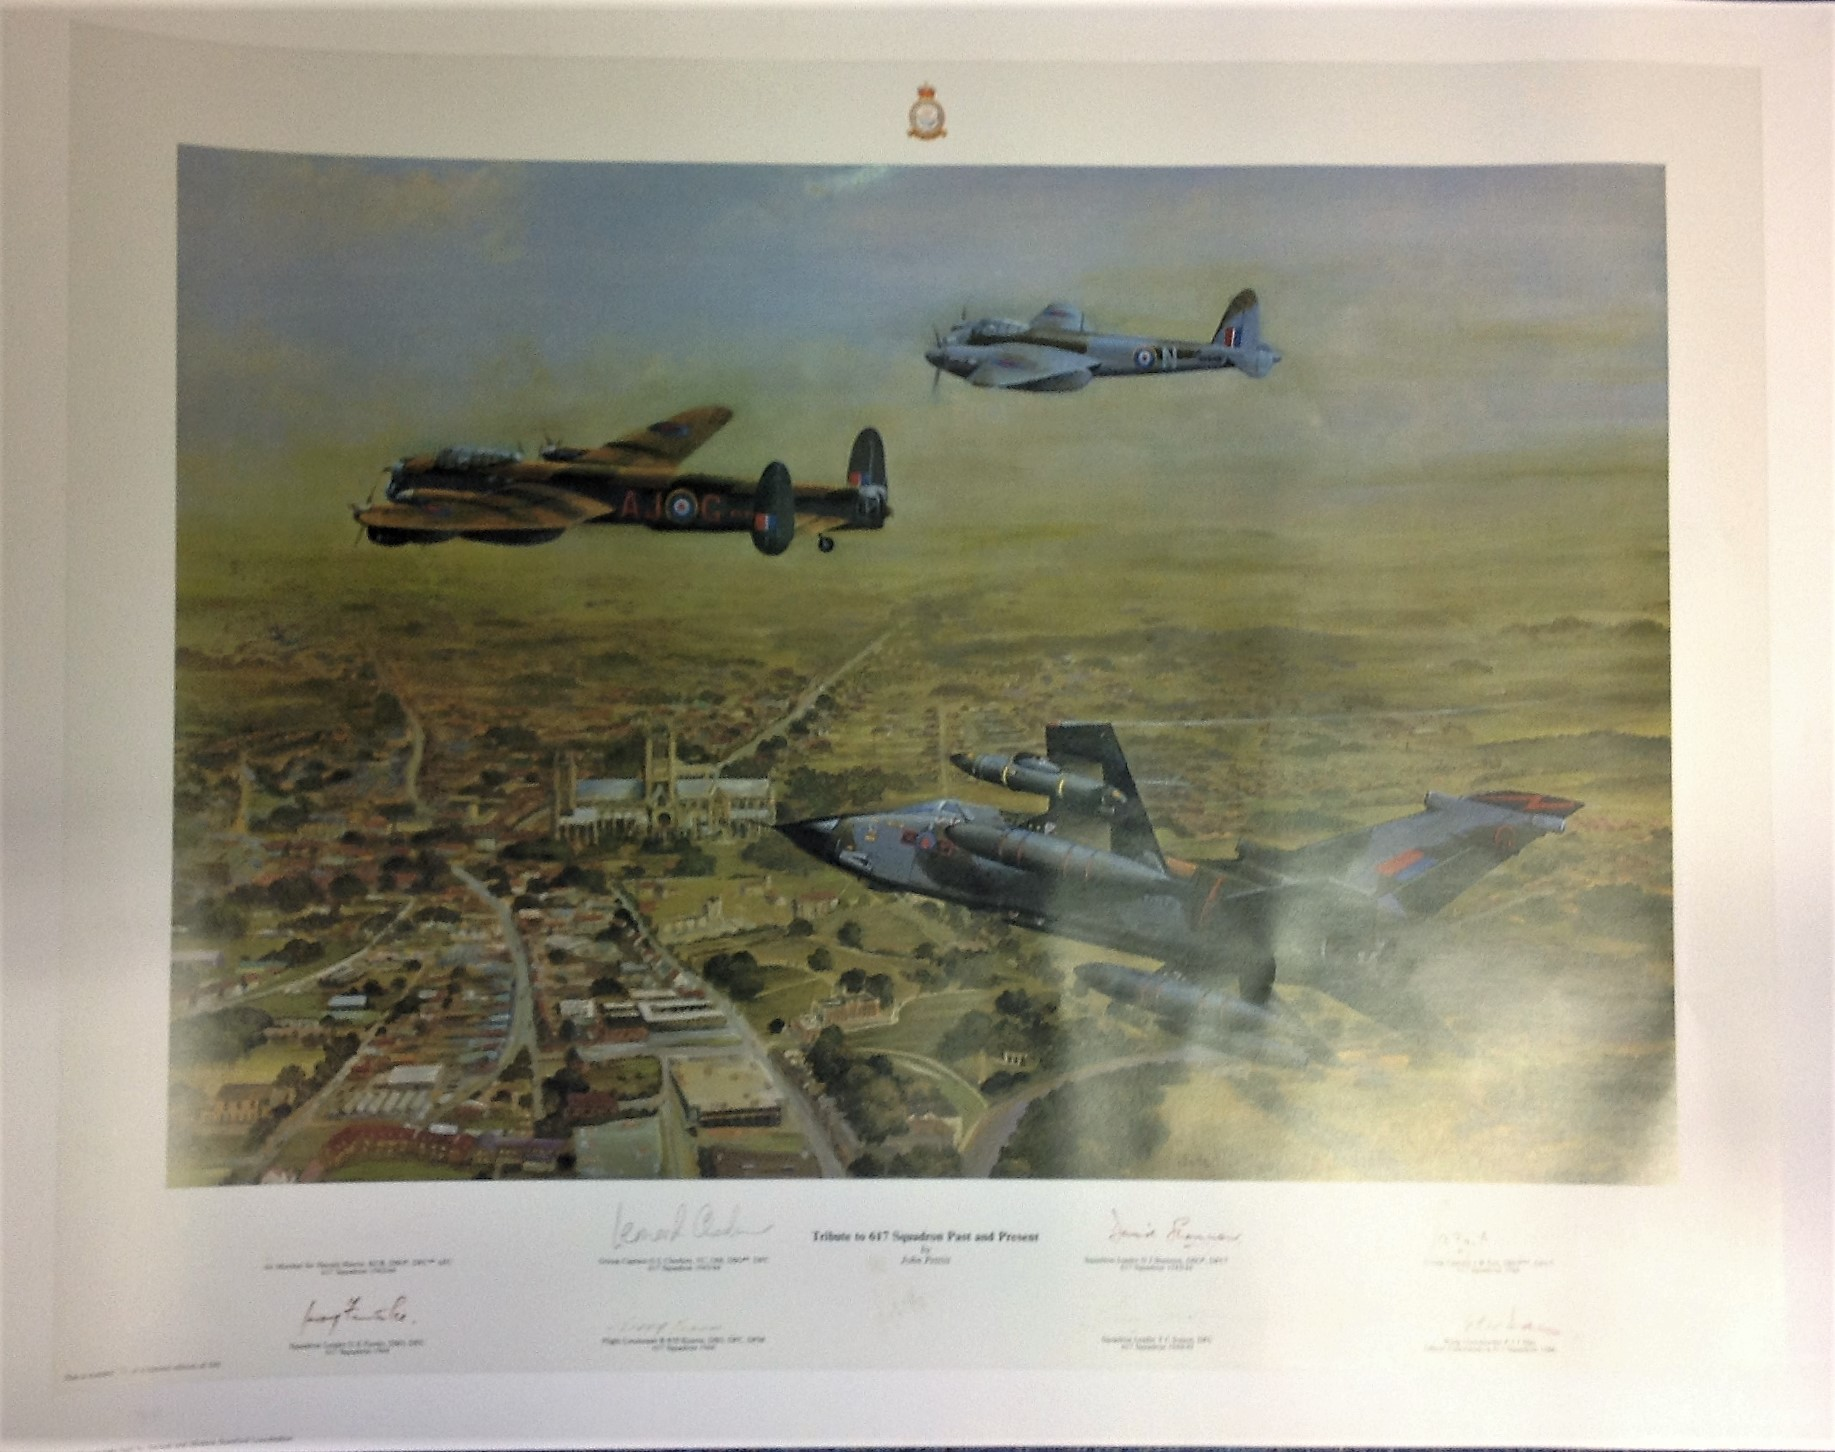 Lot 56 - Dambuster World War Two print 24x30 titled Tribute to 617 Squadron Past and Present by the artist